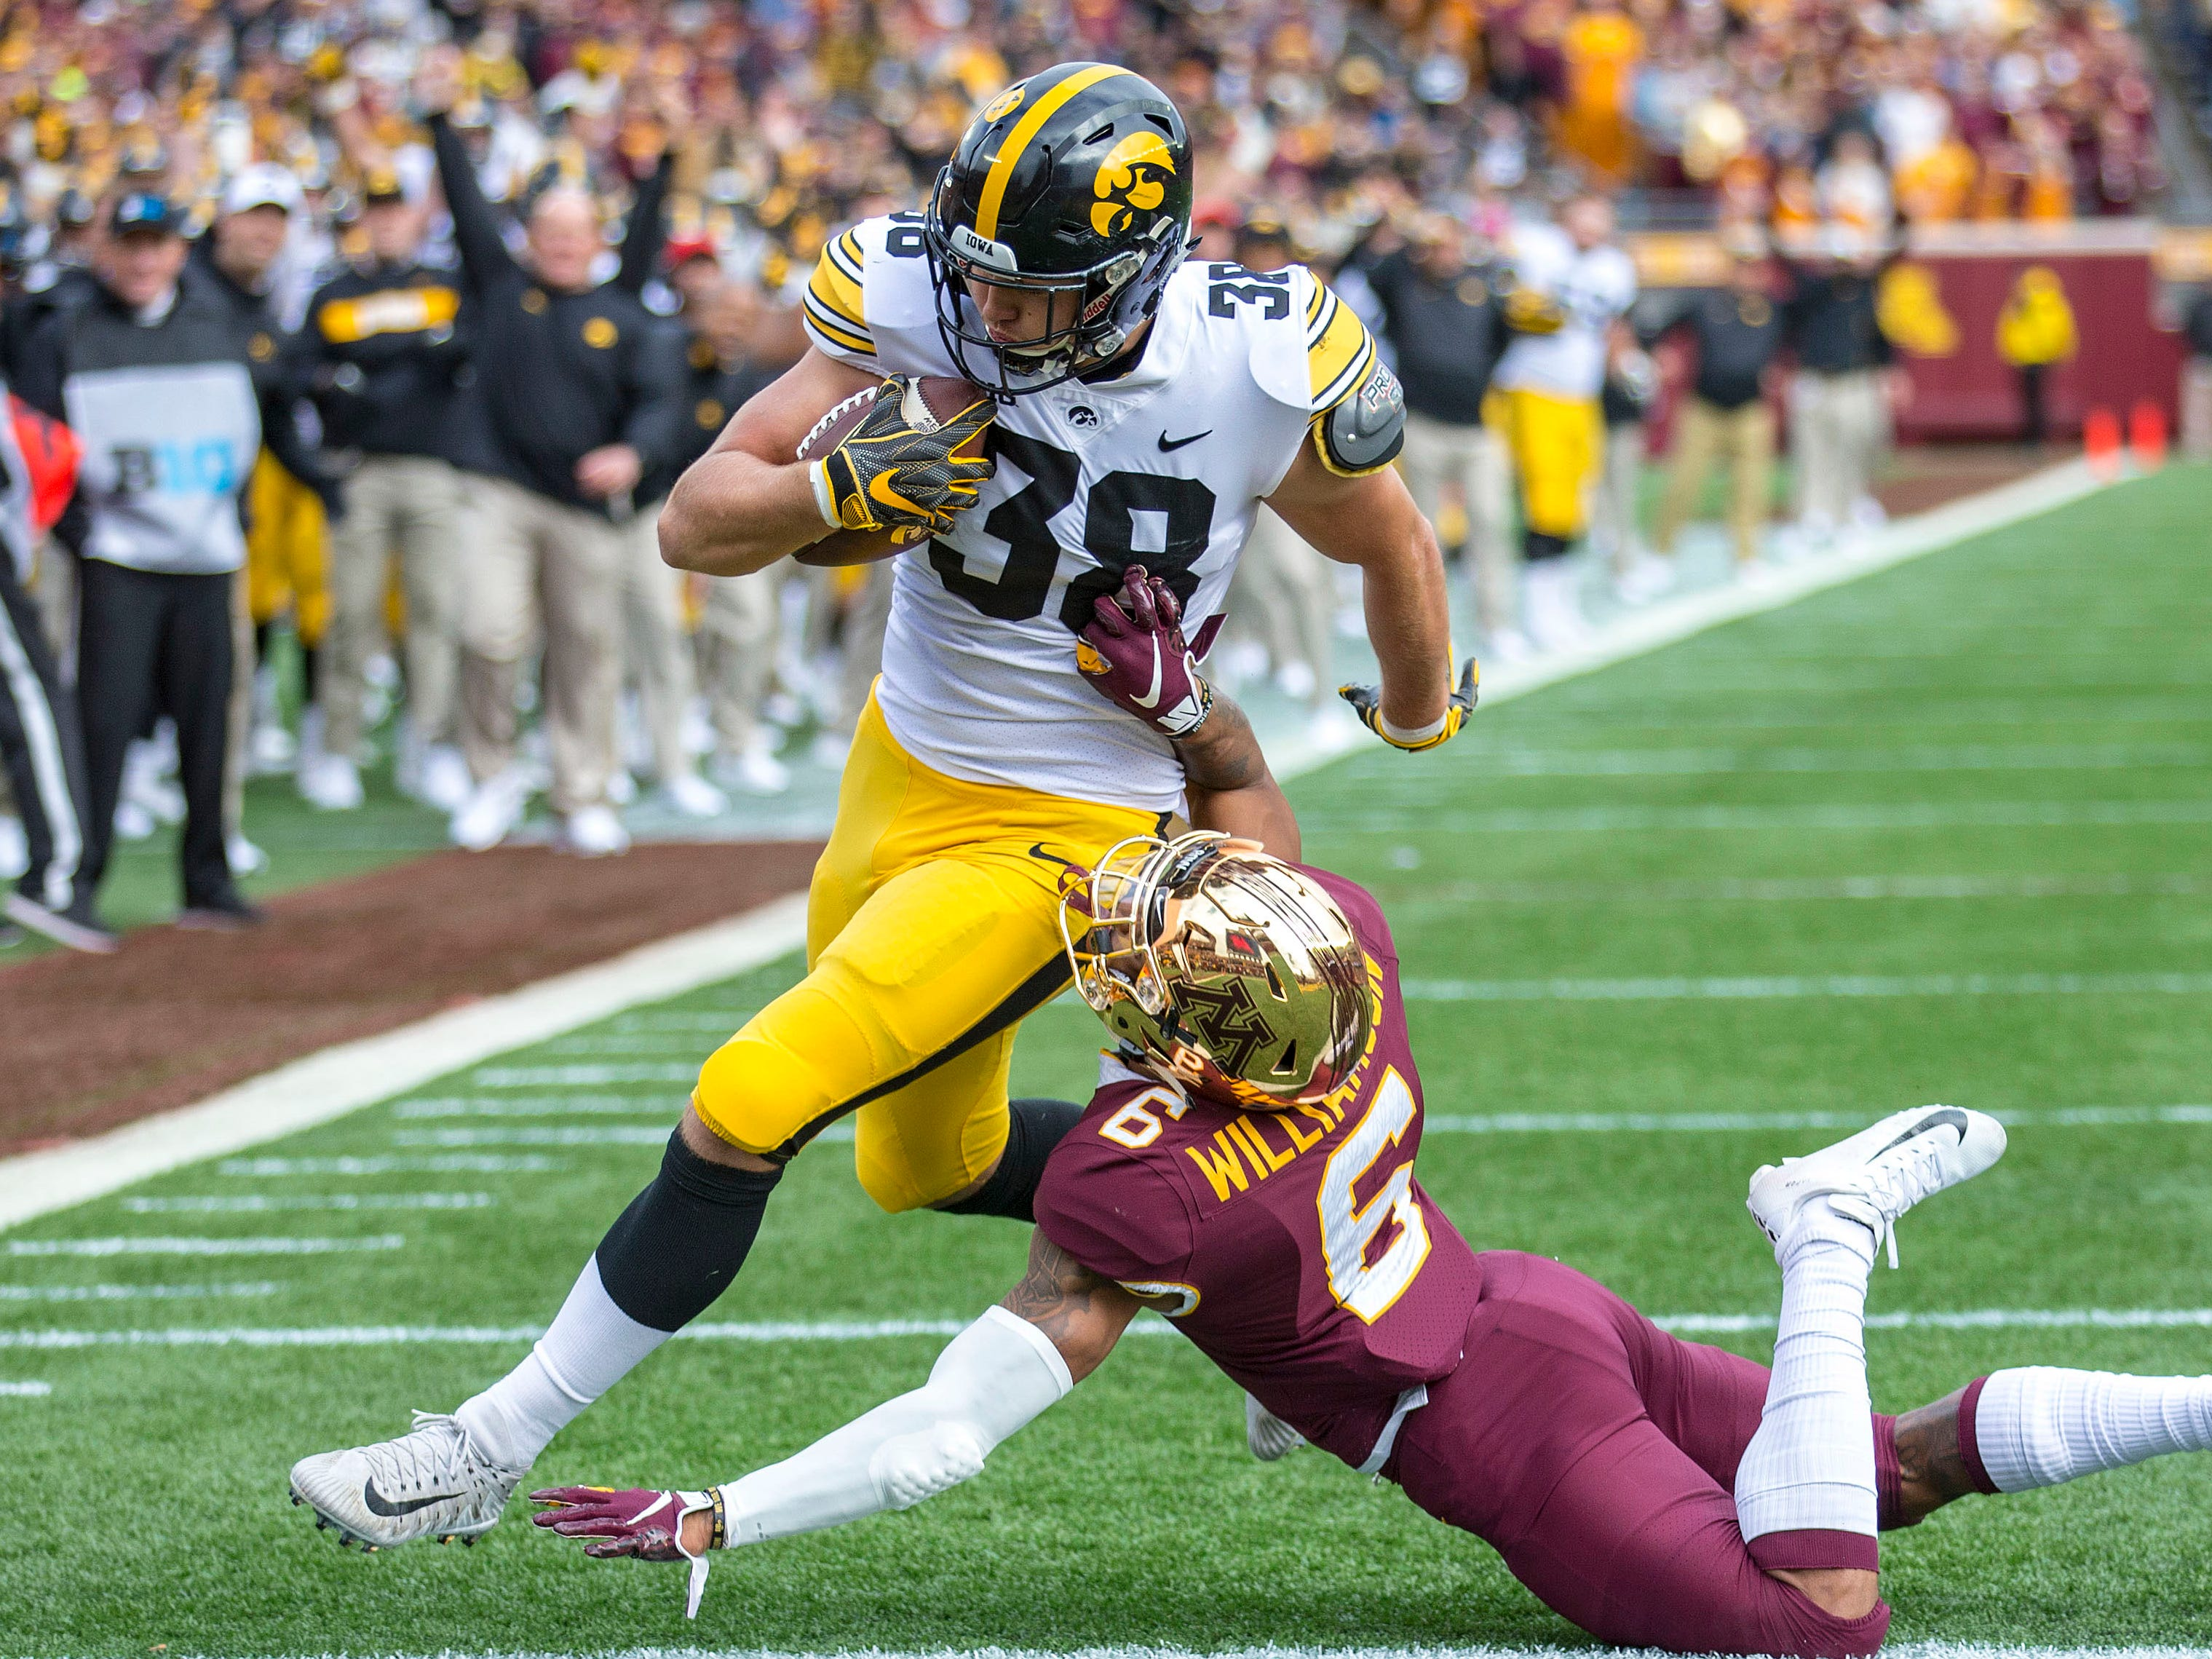 Oct 6, 2018; Minneapolis, MN, USA; Iowa Hawkeyes tight end T.J. Hockenson (38) rushes for a touchdown on a fake field goal attempt against Minnesota Golden Gophers defensive back Chris Williamson (6) in the first half at TCF Bank Stadium. Mandatory Credit: Jesse Johnson-USA TODAY Sports